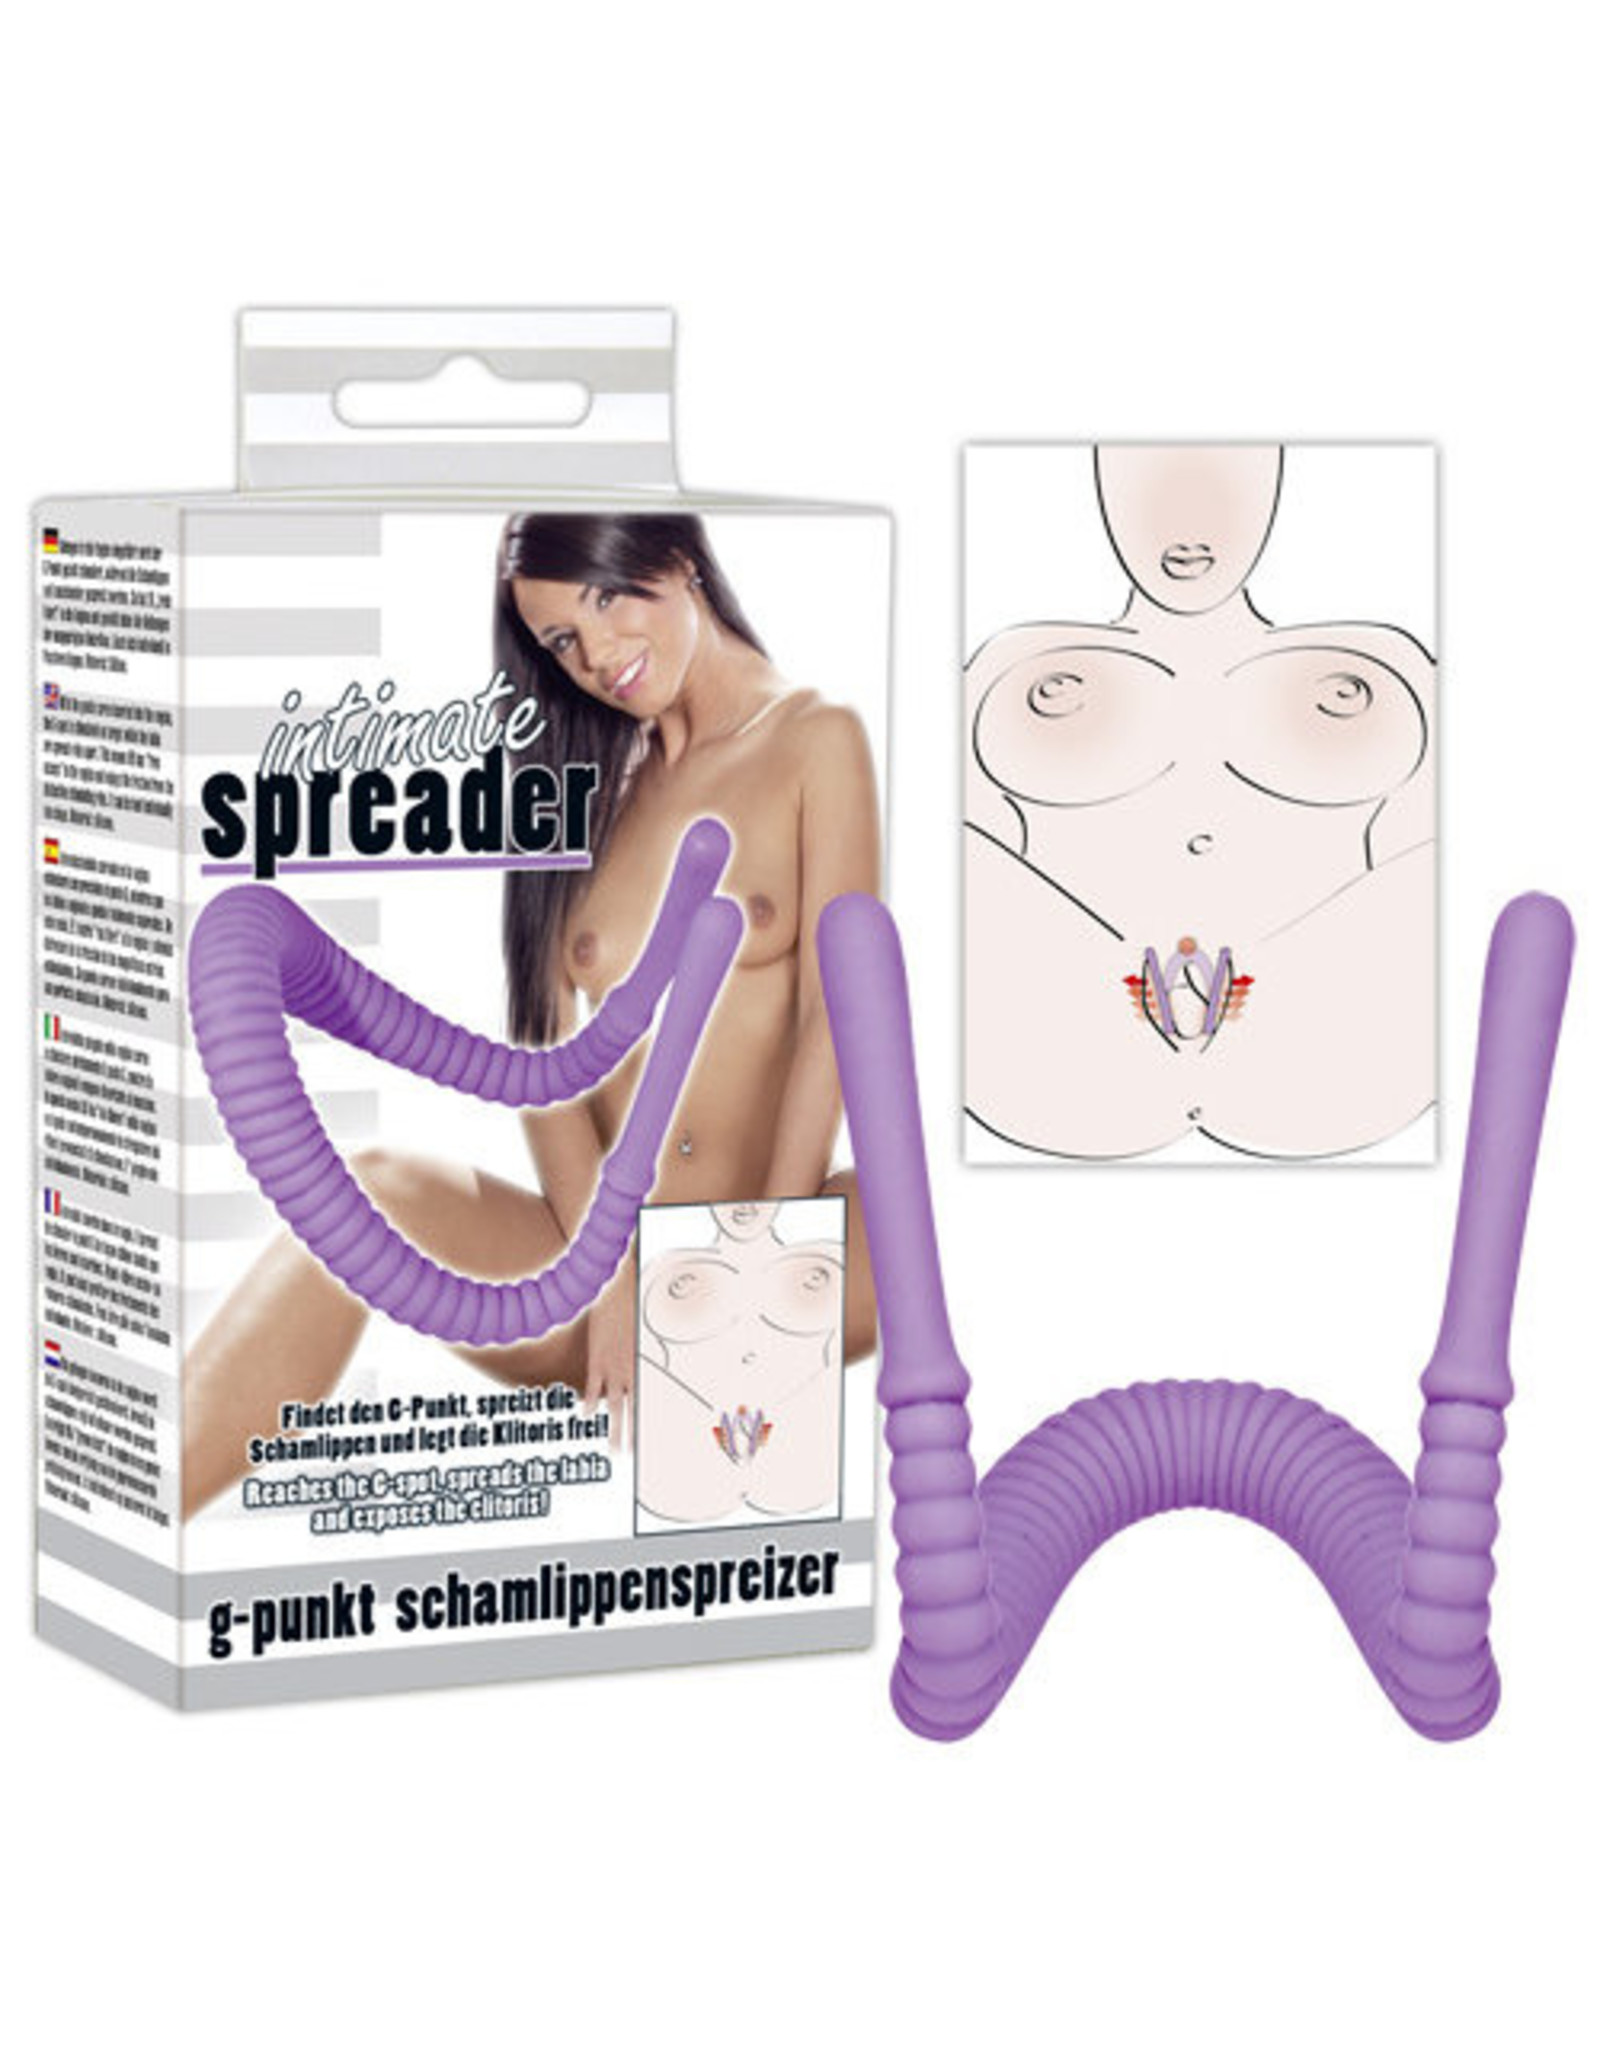 You2Toys Intimate Spreader Lila